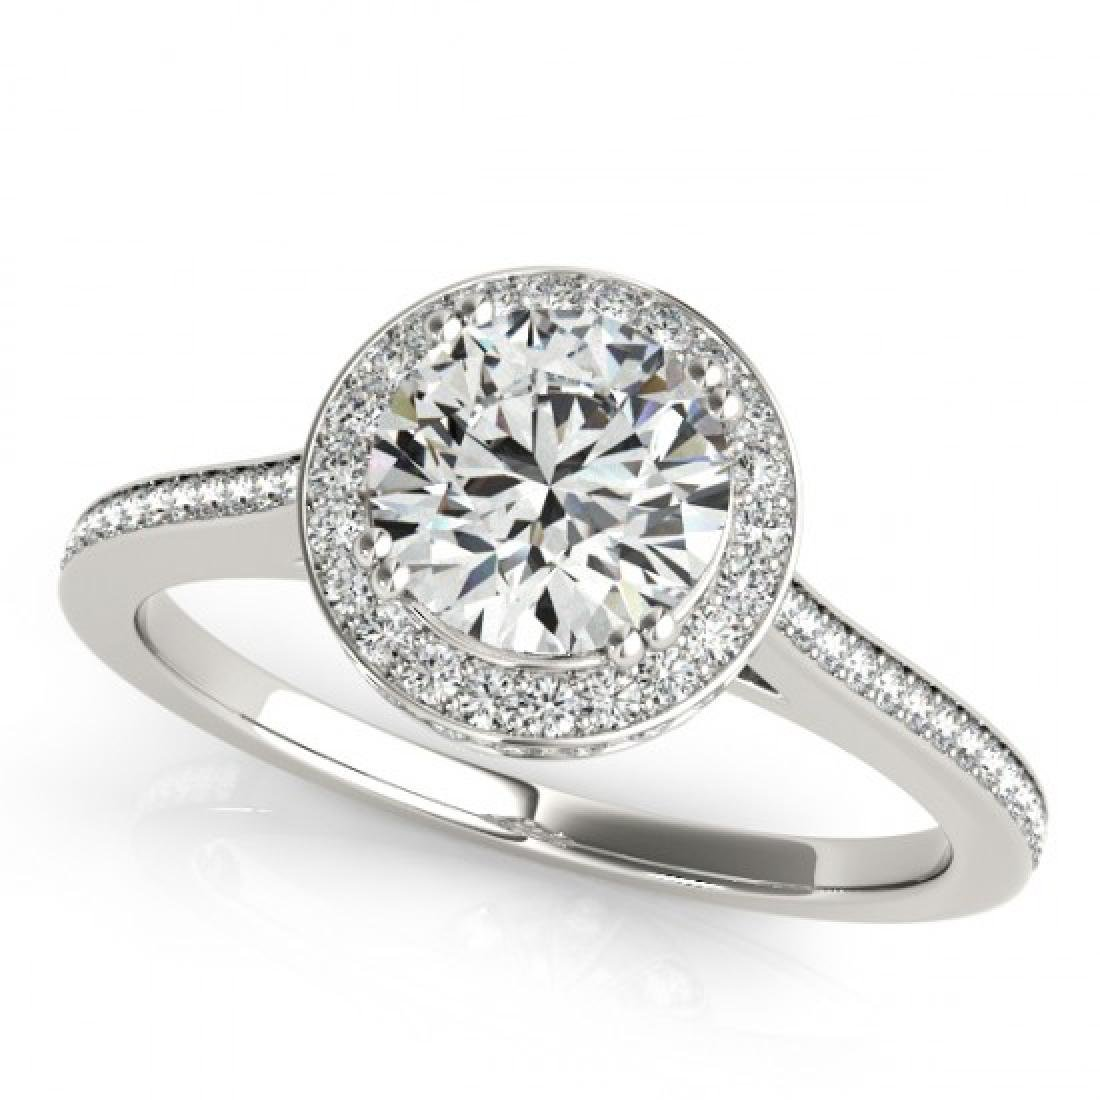 2.03 CTW Certified VS/SI Diamond Solitaire Halo Ring